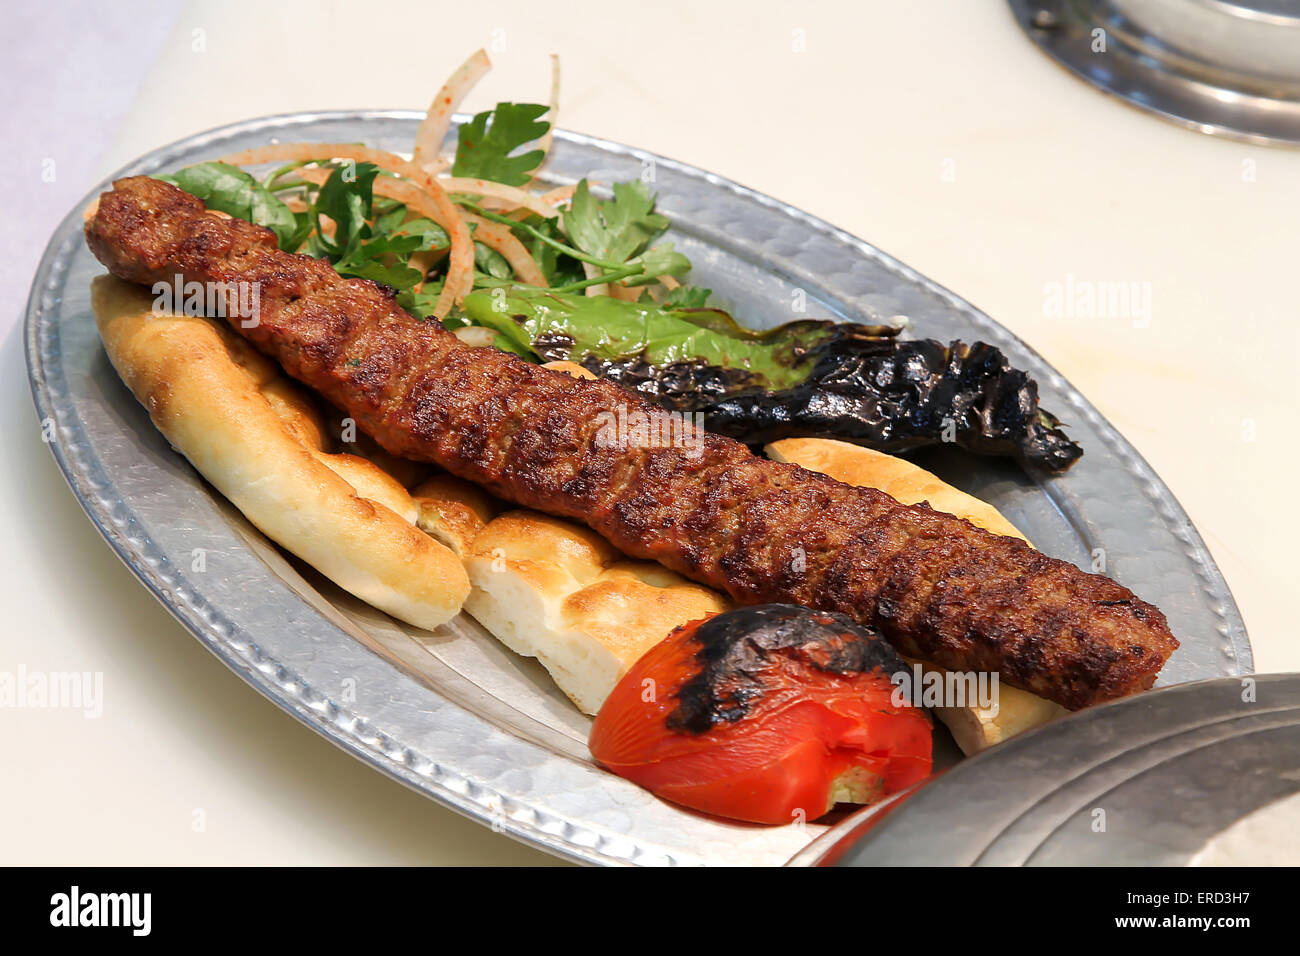 Turkish Kebab Served In An Anatolian Plate Stock Photo Alamy